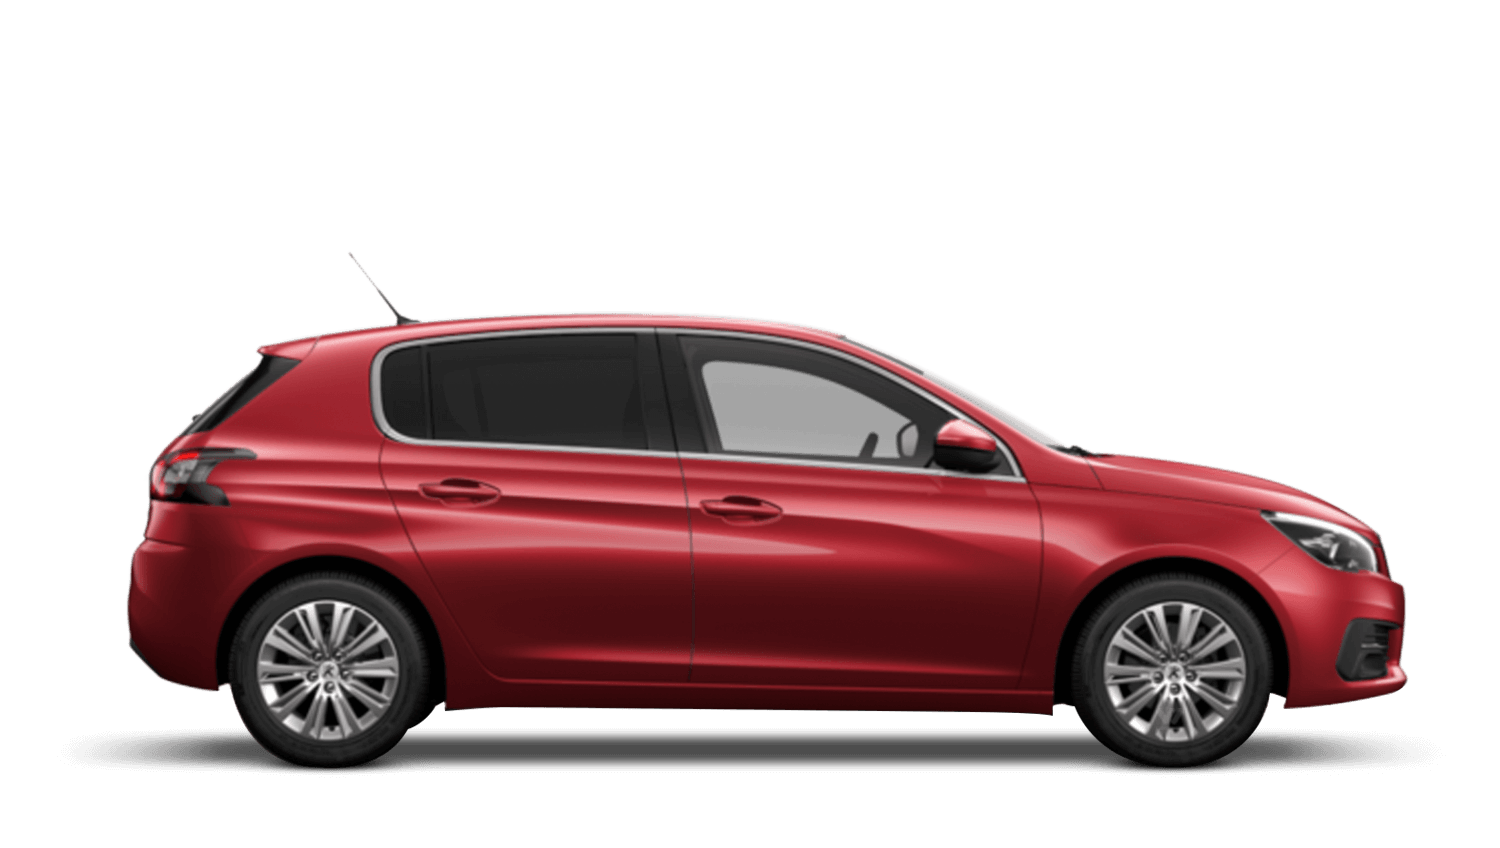 Ultimate Red Peugeot 308